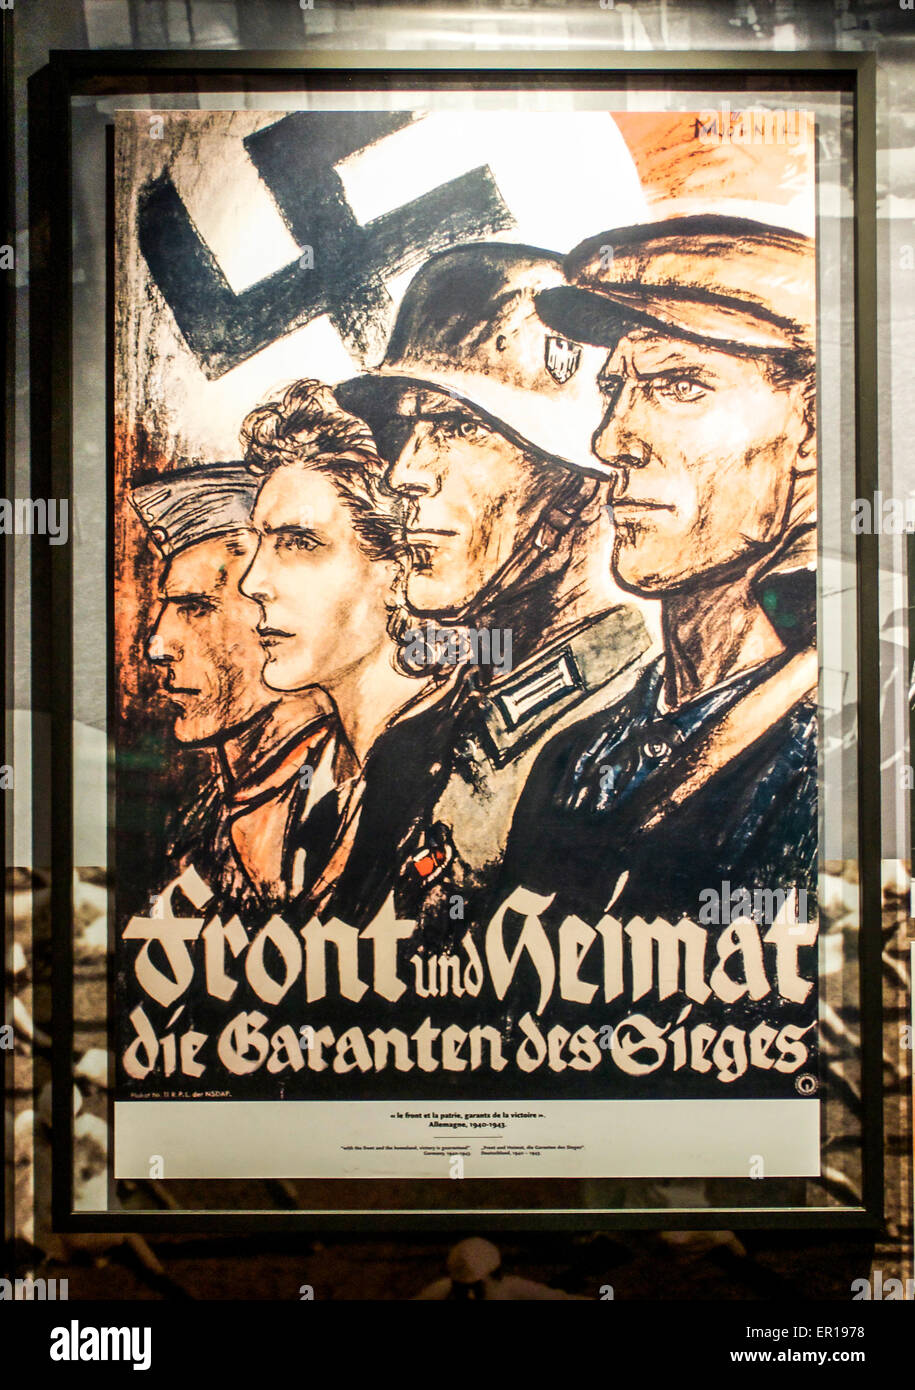 Vintage German World War II patriotic propaganda poster for Front and Home. - Stock Image